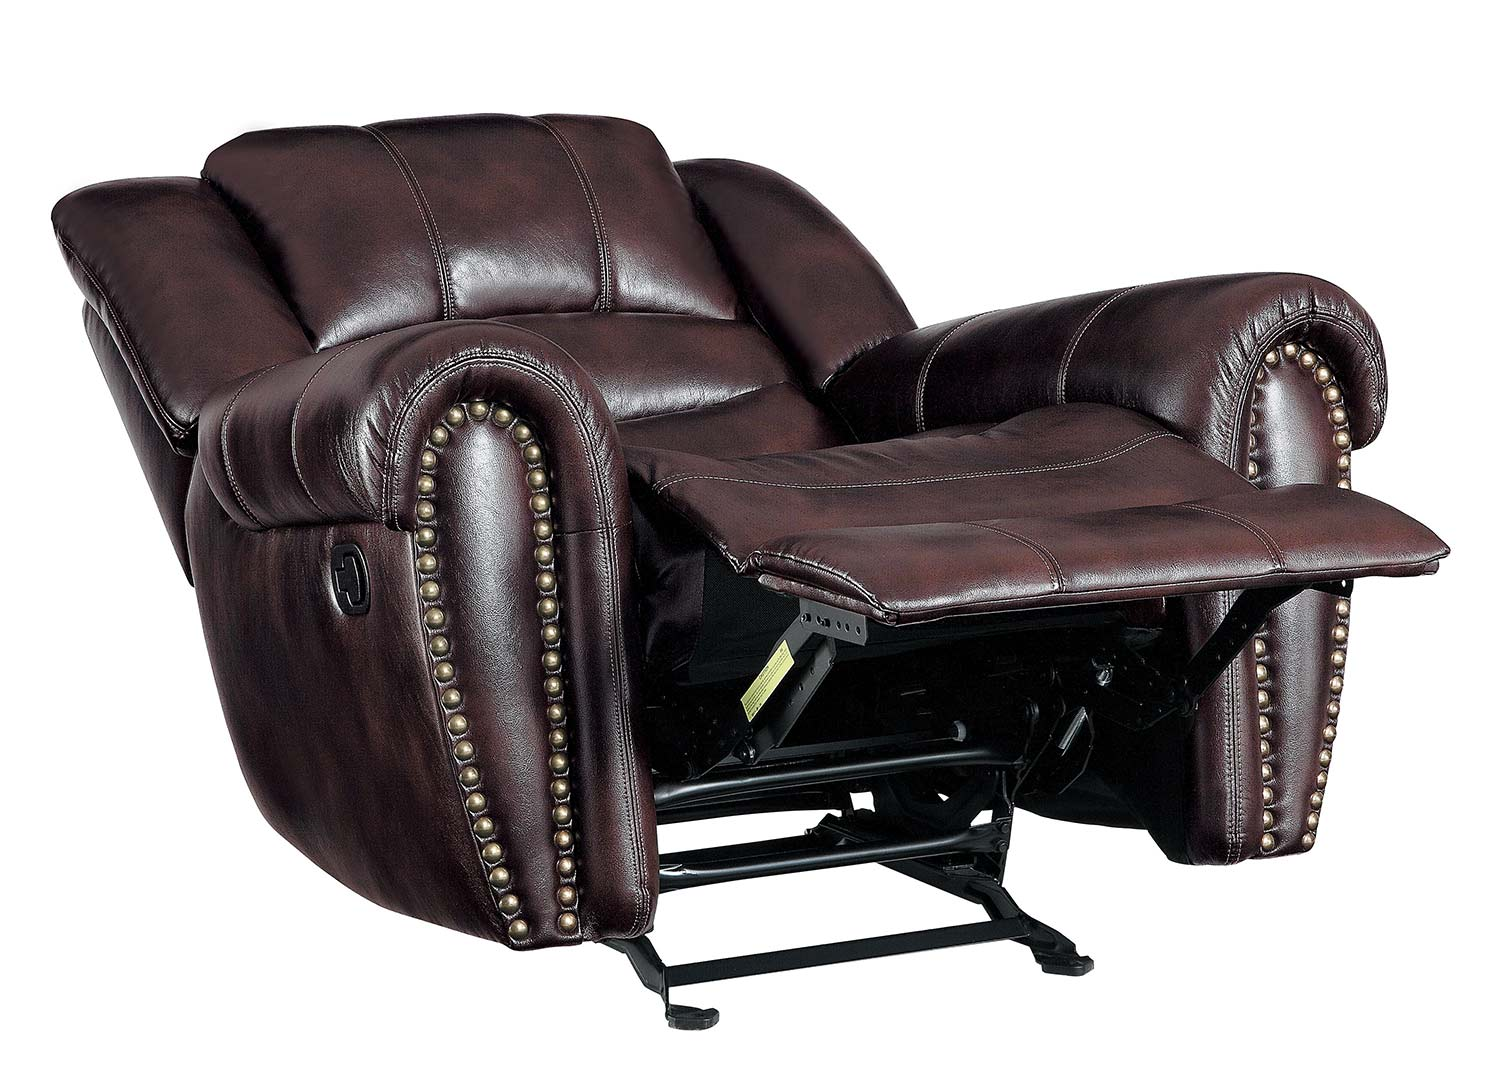 Homelegance Center Hill Glider Reclining Chair - Dark Brown